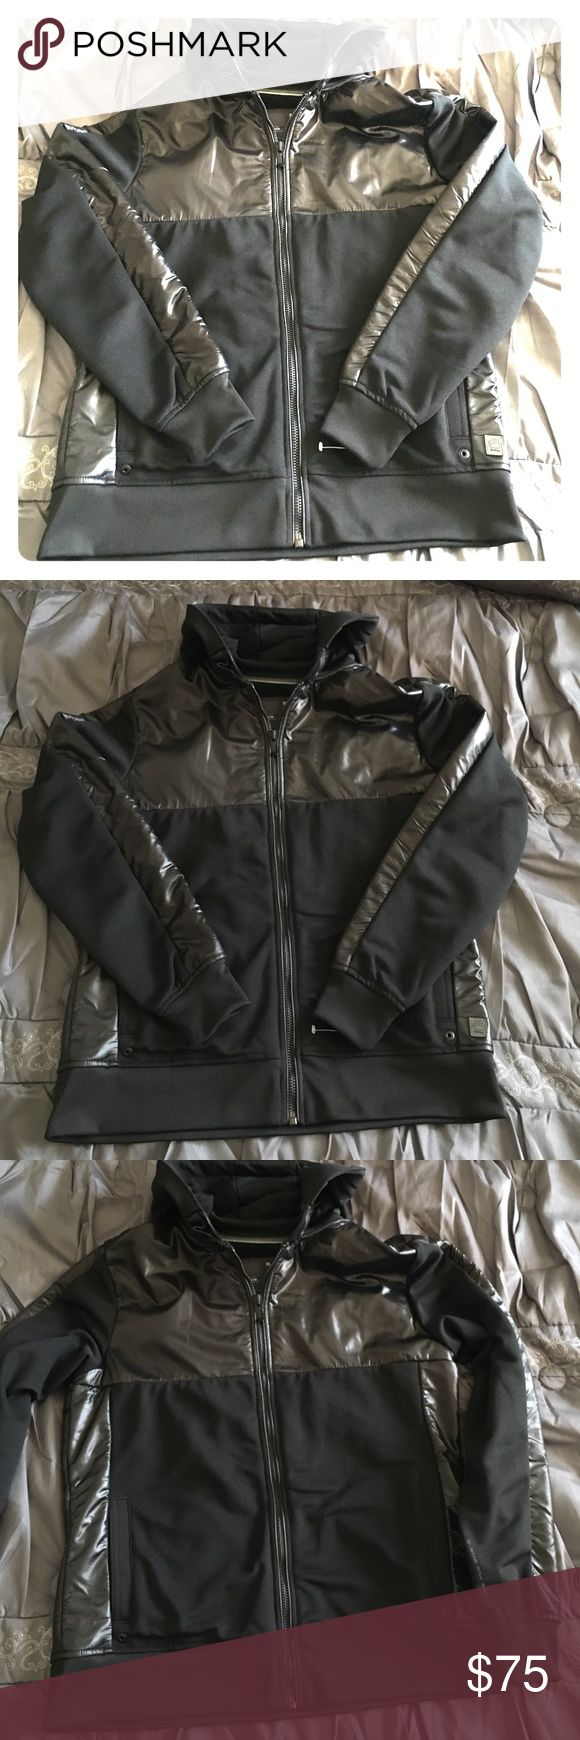 G STAR RAW Black Jacket Coat New but tags must've fallen off from storage. Also see photo of front emblem. Not sure if it faded or if it's supposed to be like that. Either way it looks great!! G Star Raw Denim Jackets & Coats Bomber & Varsity